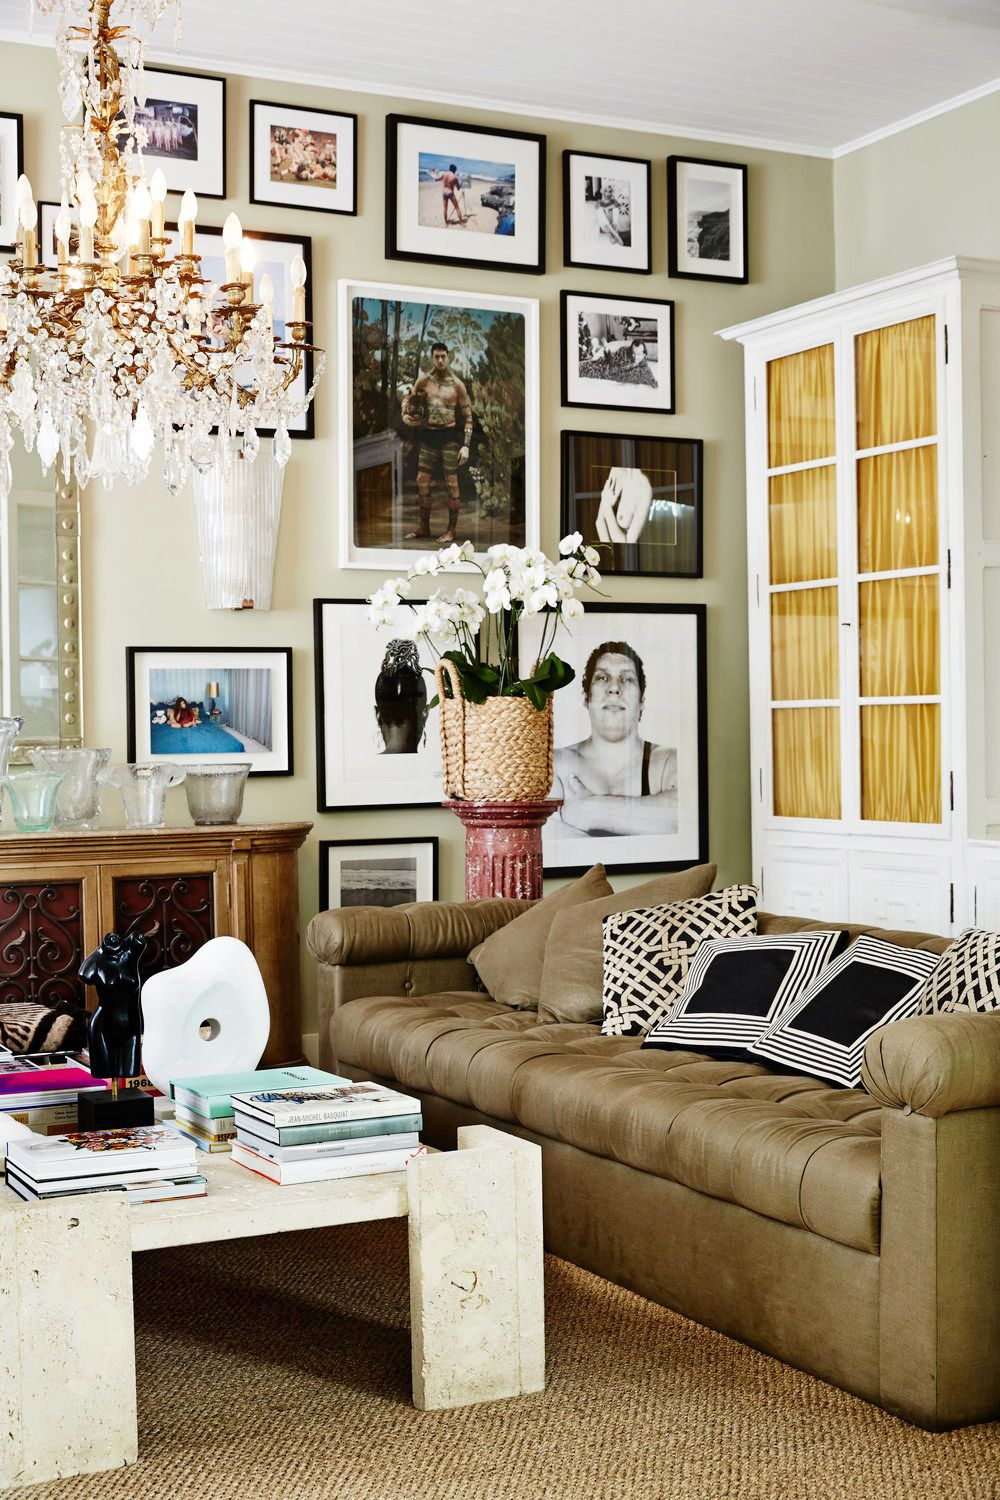 17+ Paint Scheme Ideas For Living Rooms Pictures